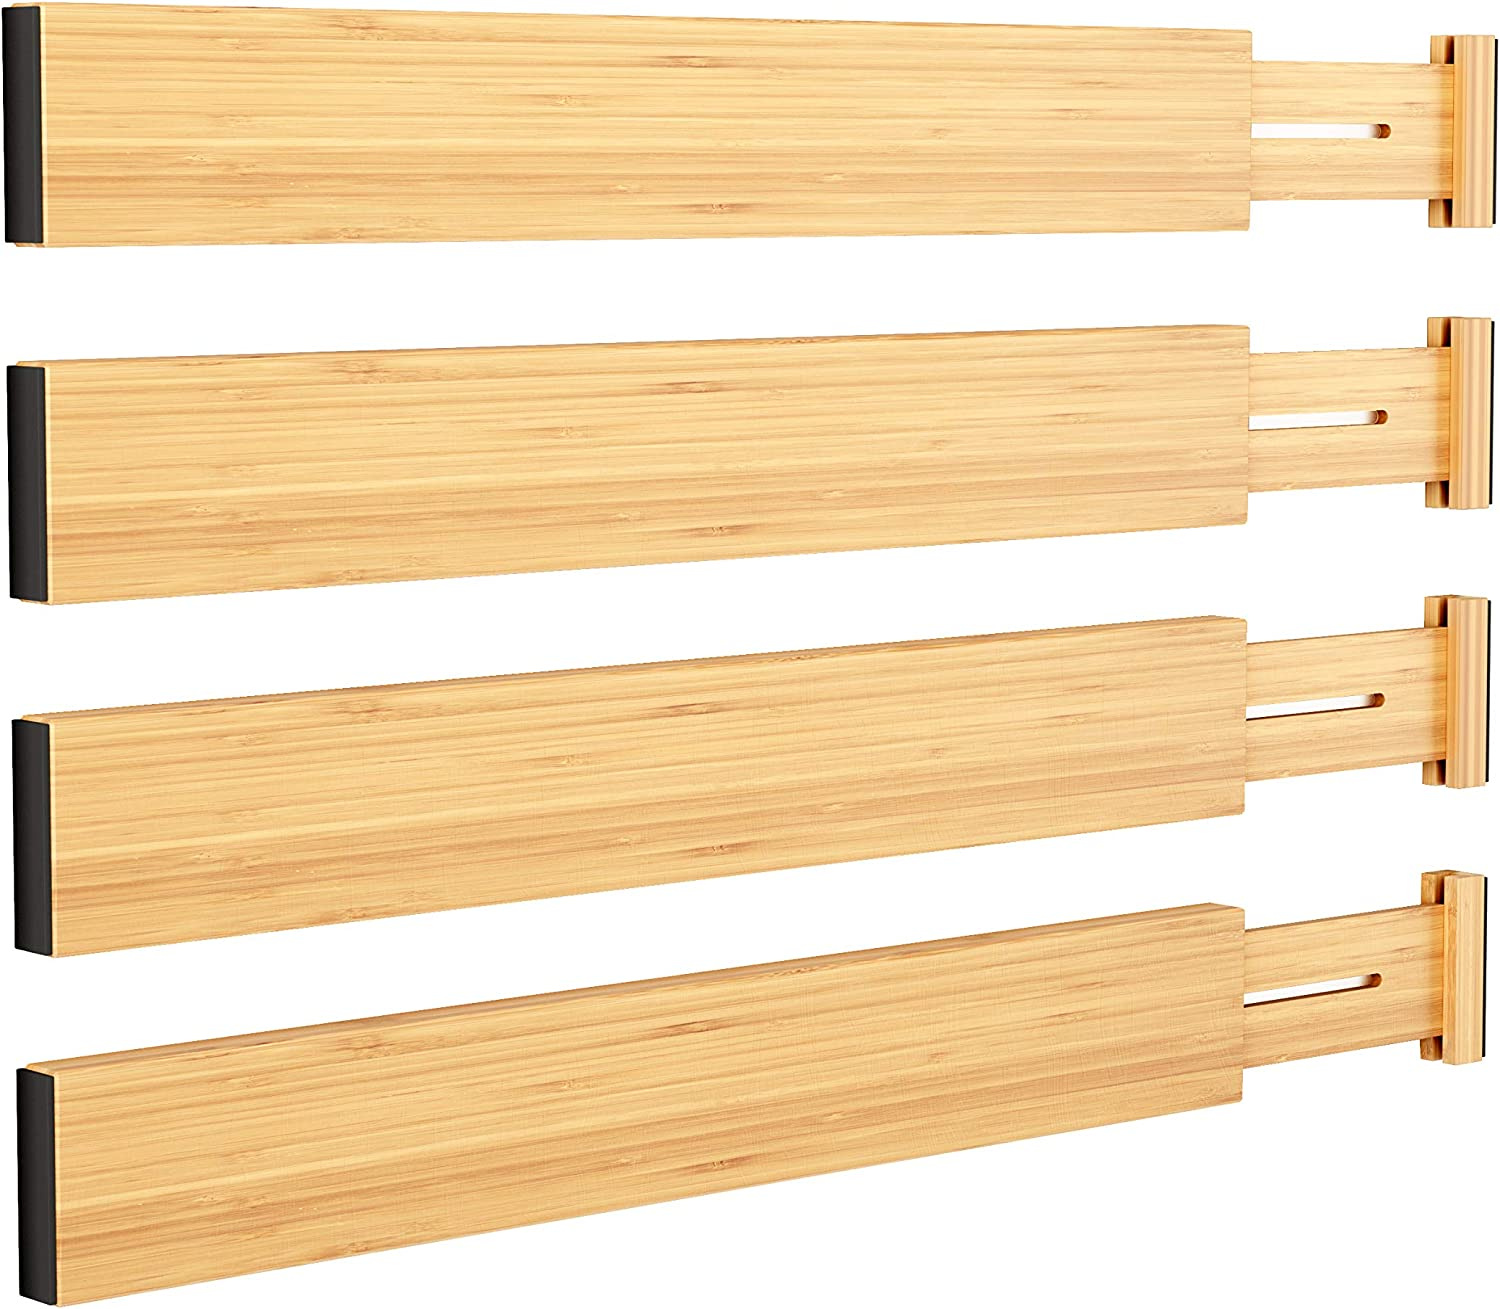 BAMEOS Drawer Dividers Bamboo Separators Organization Expandable Organizers for Kitchen Bedroom Bathroom Dresser Office 4-pack (17.5-22 inch)